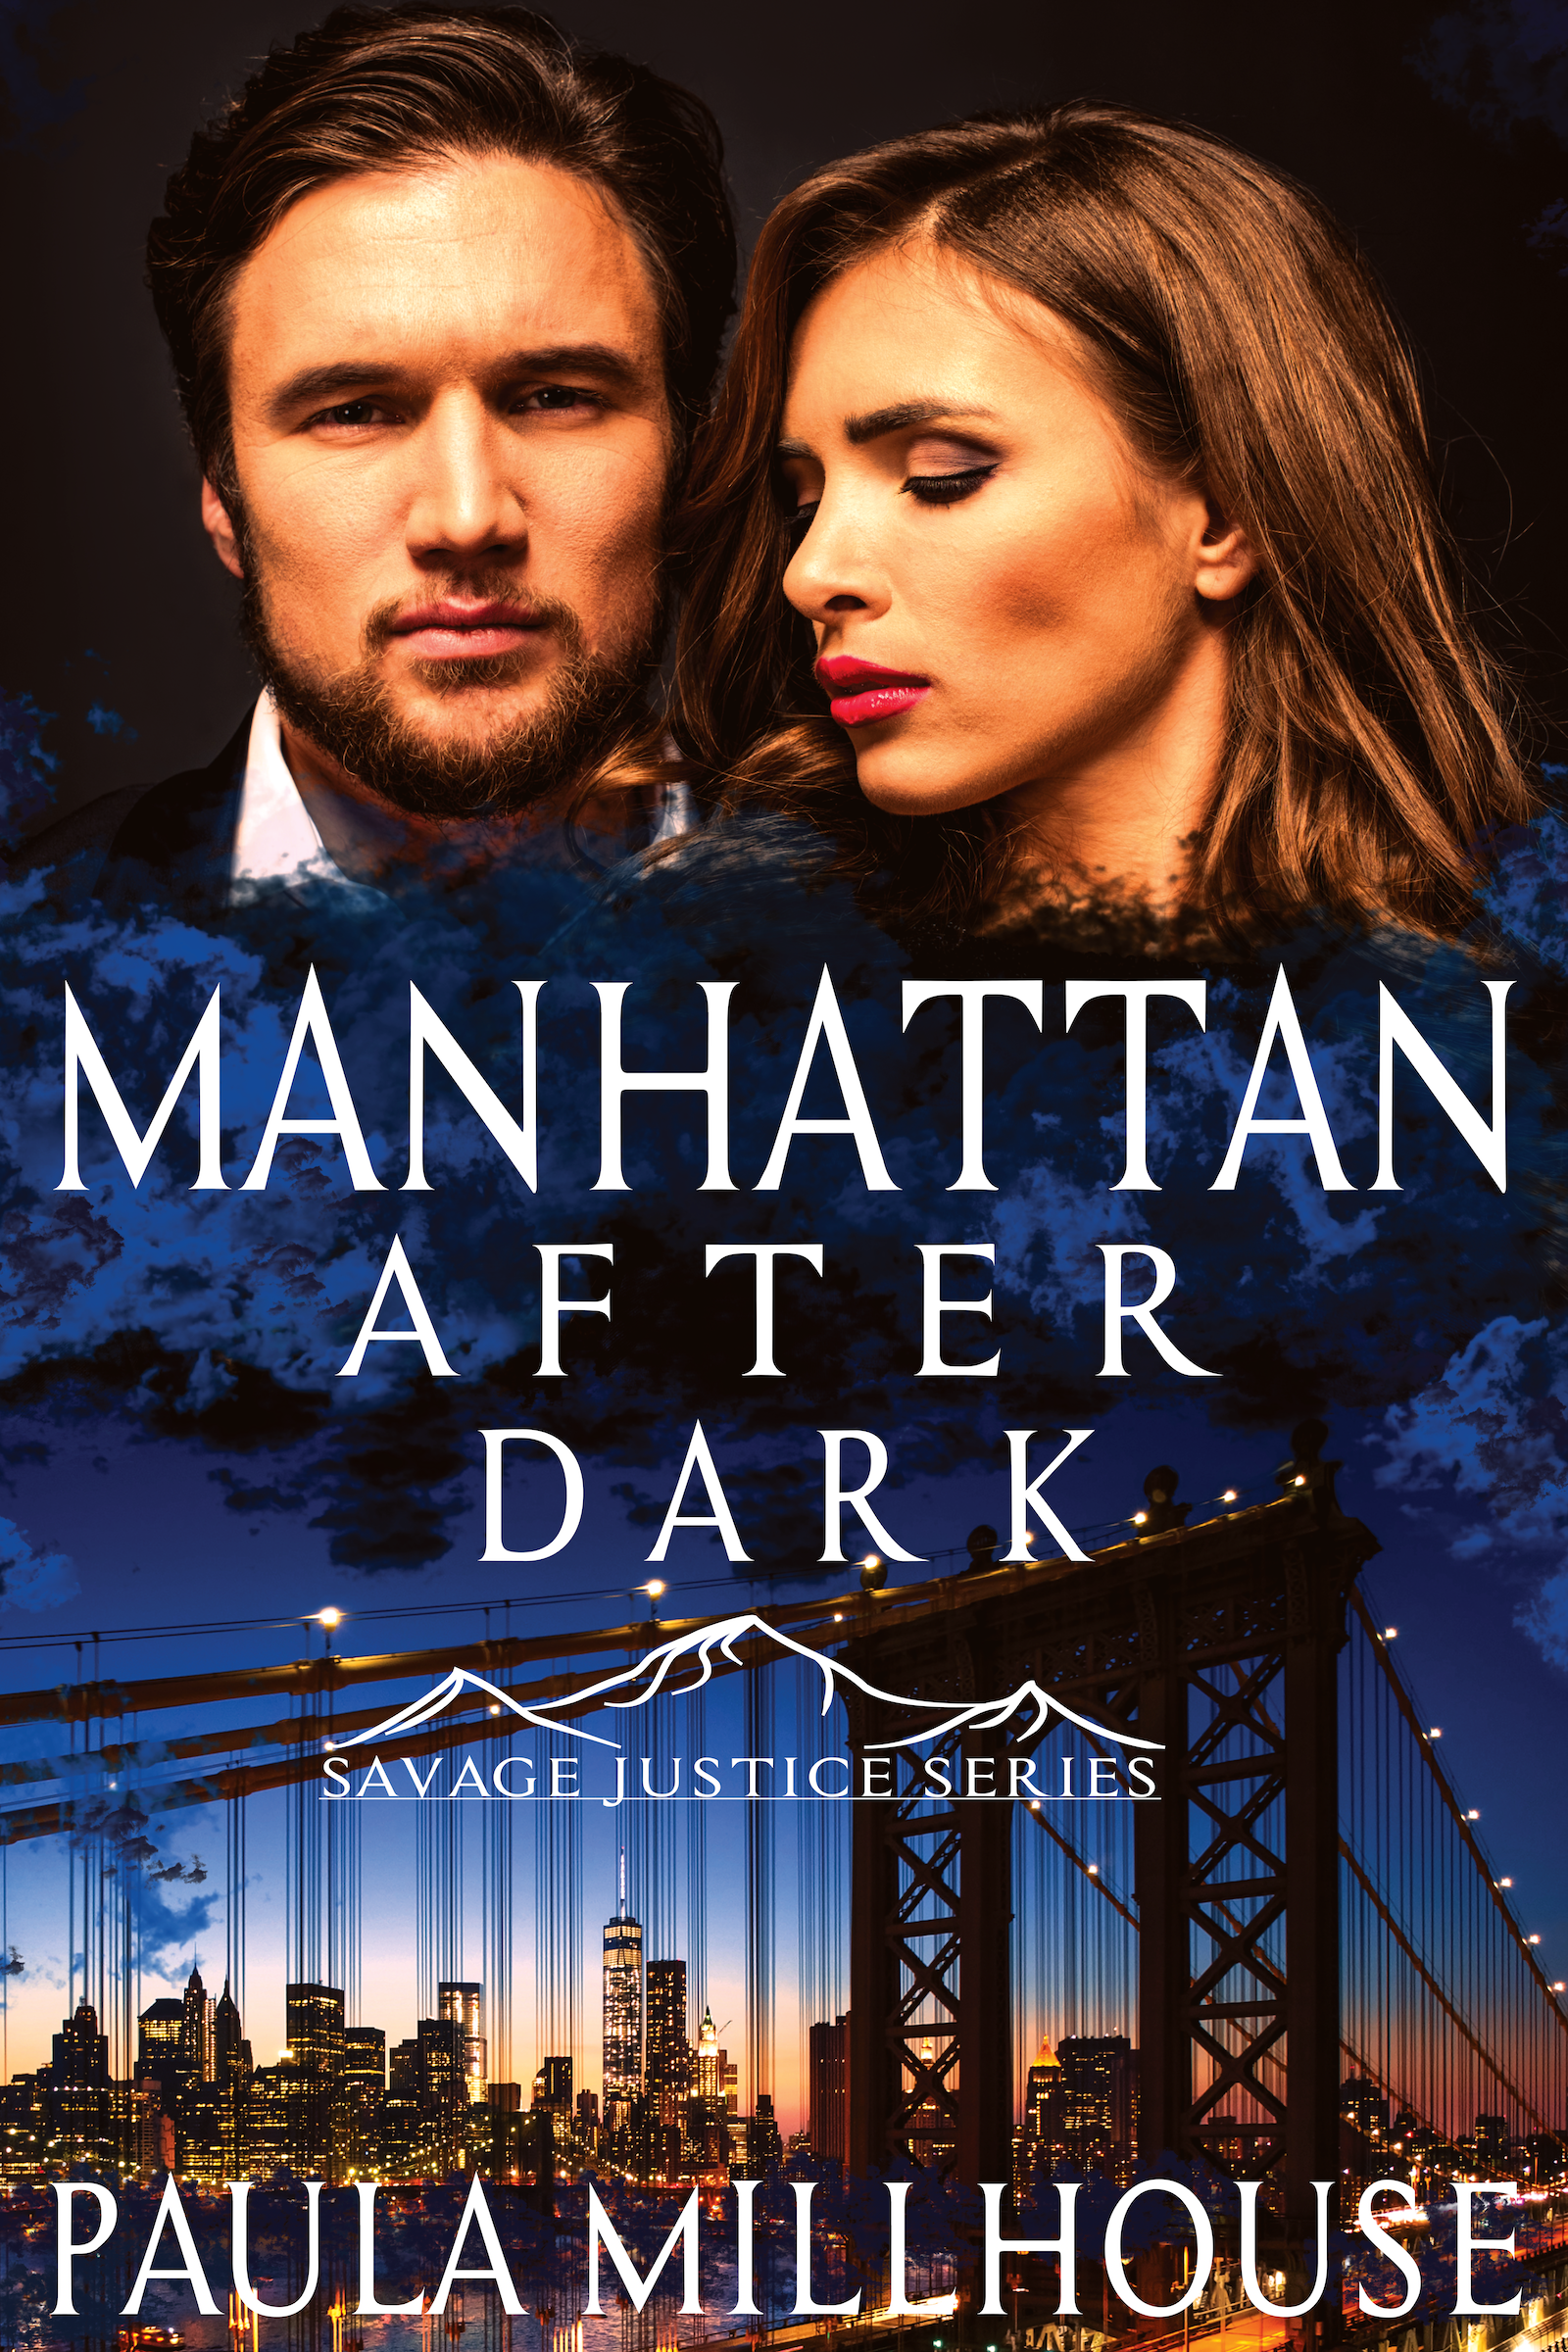 http://bit.ly/2RNIa74ManhattanAfterDark, Romantic Suspense Series, FBI Romance, Romantic Thriller, New York Romance, Manhattan Books, Author Paula Millhouse